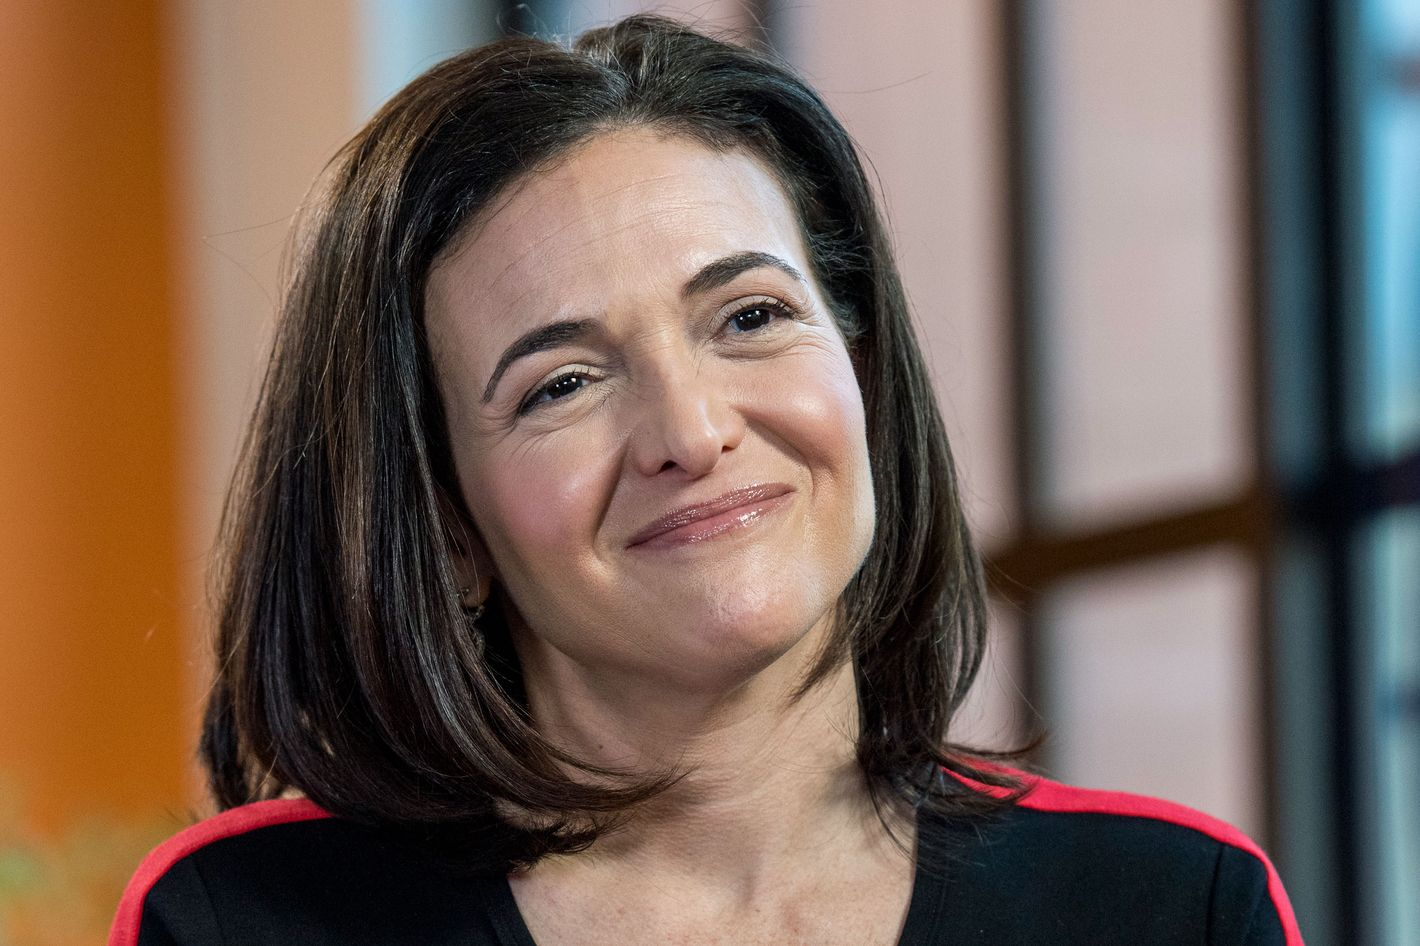 Sheryl Sandberg Shares What She's Learned After Her